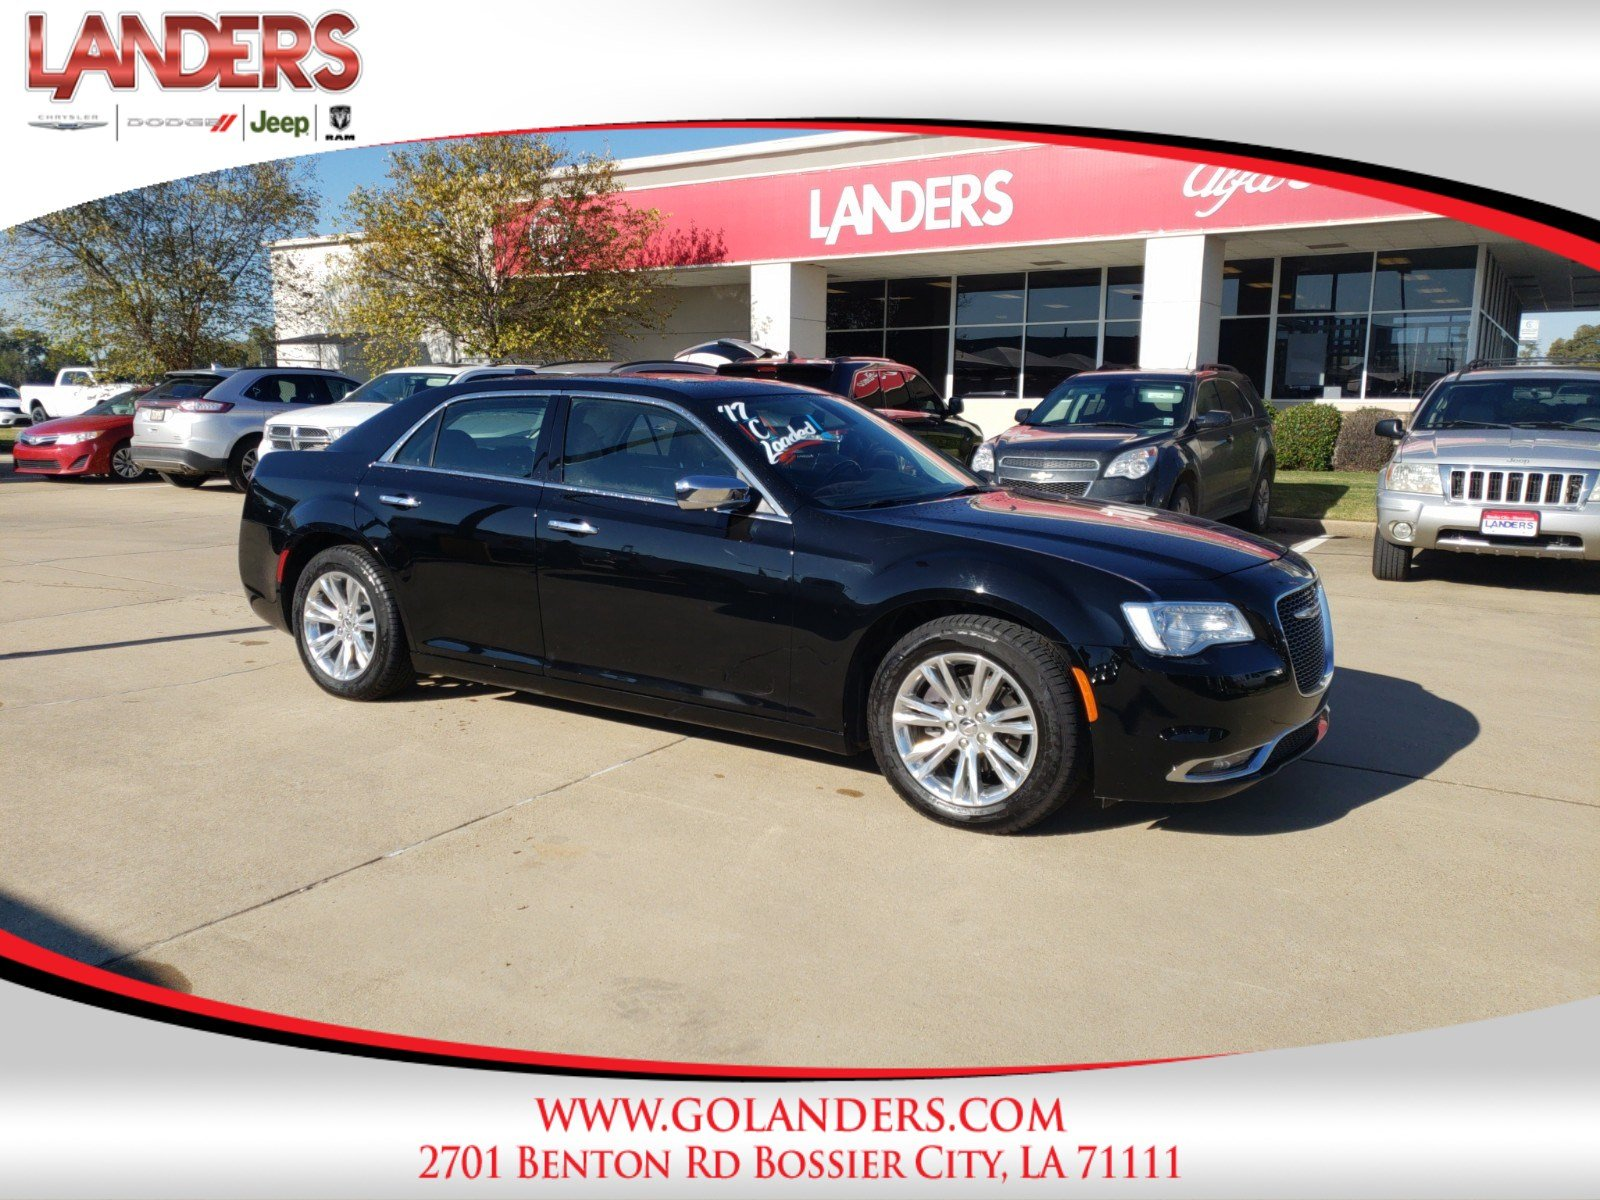 Certified Pre Owned 2017 Chrysler 300 300C 4dr Car in Bossier City